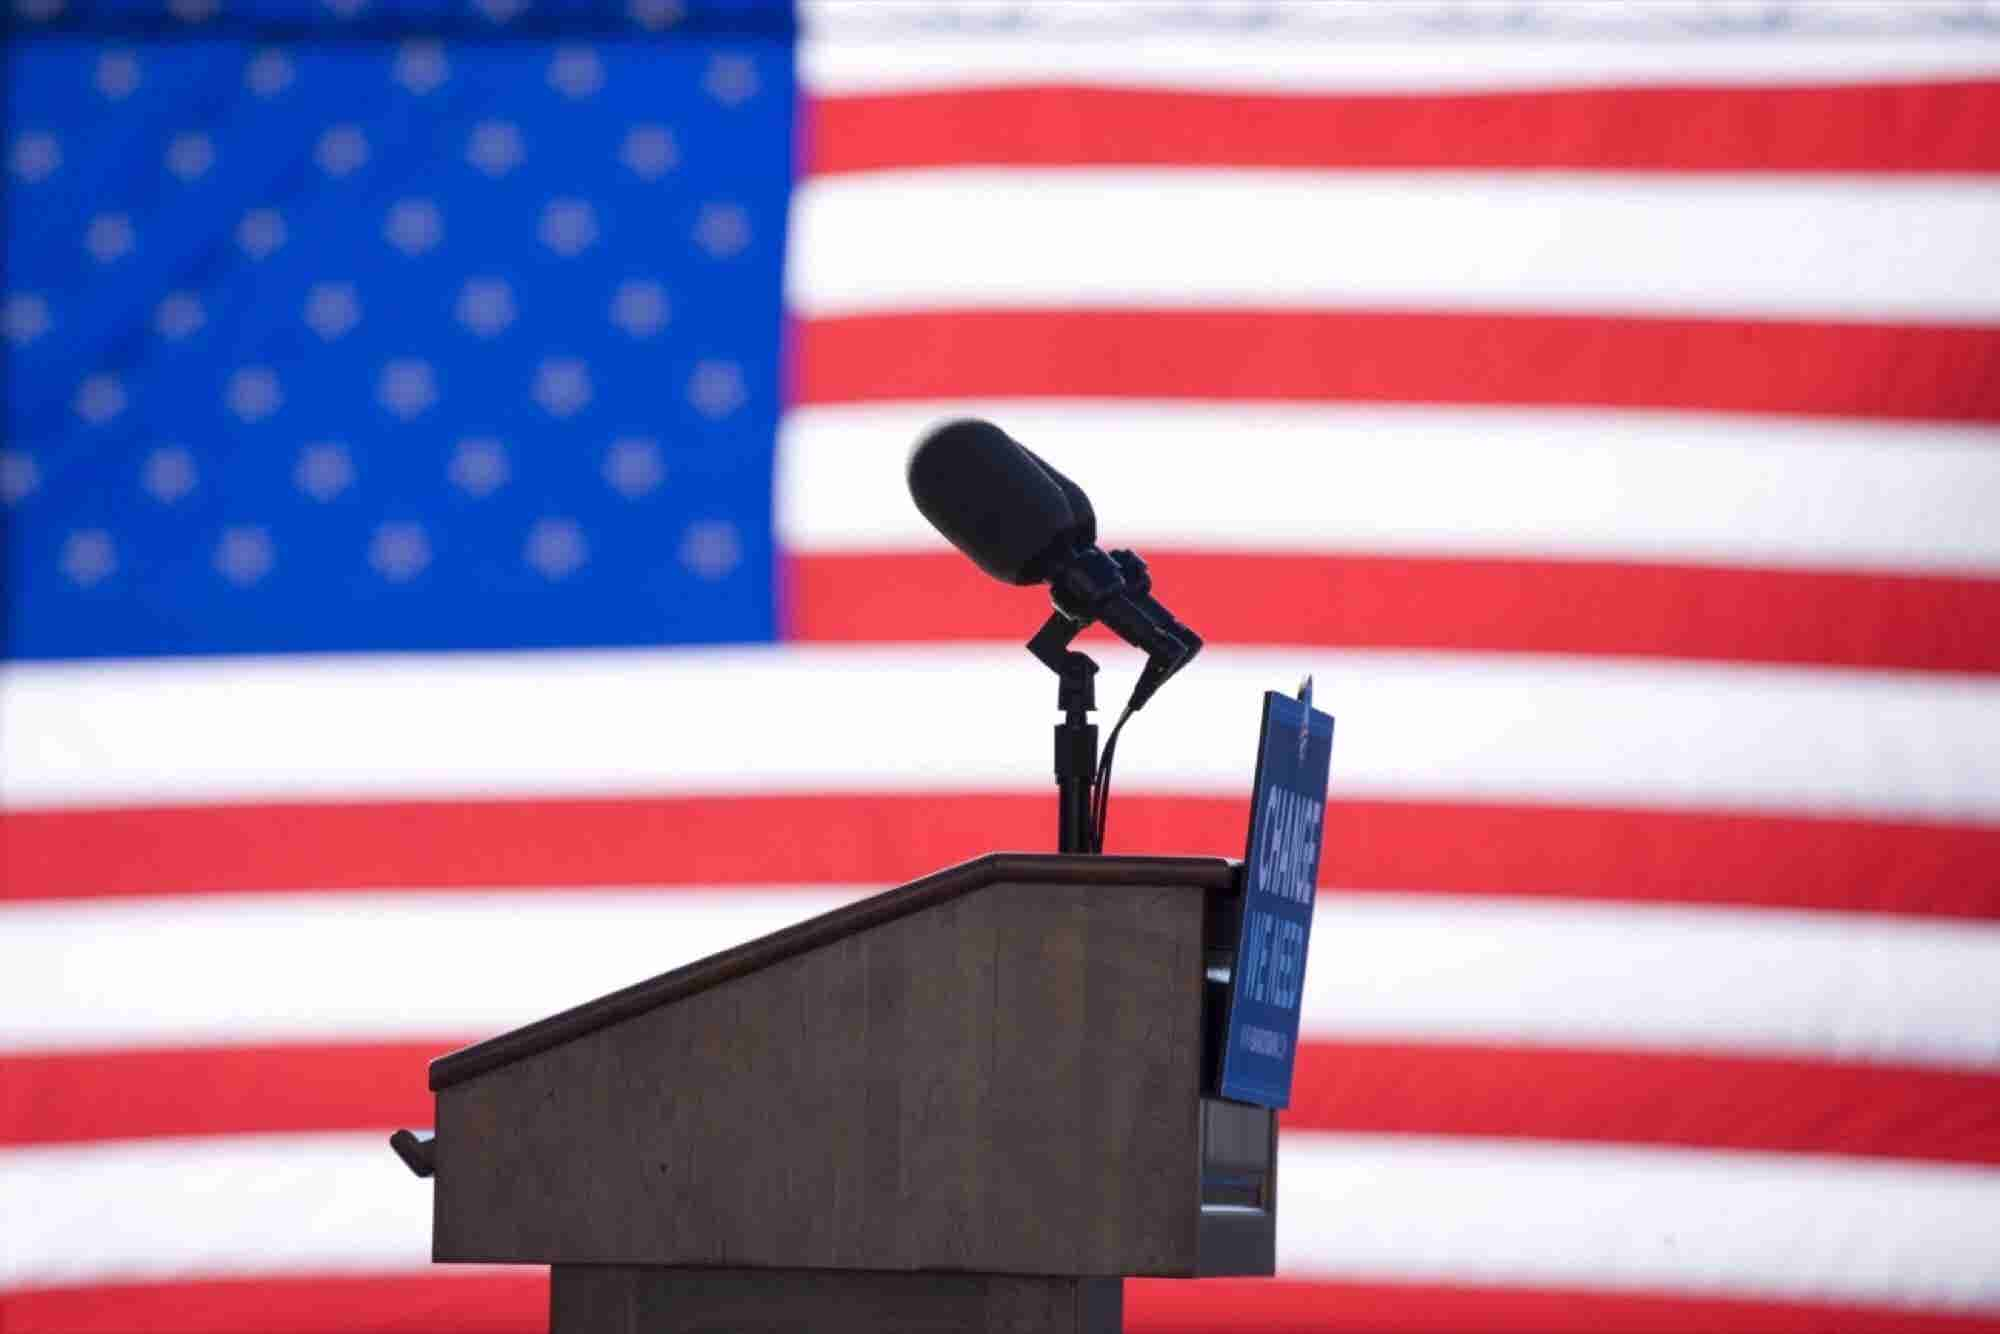 Survey Shows Presidential Candidates Miss the Mark on Small-Business Issues